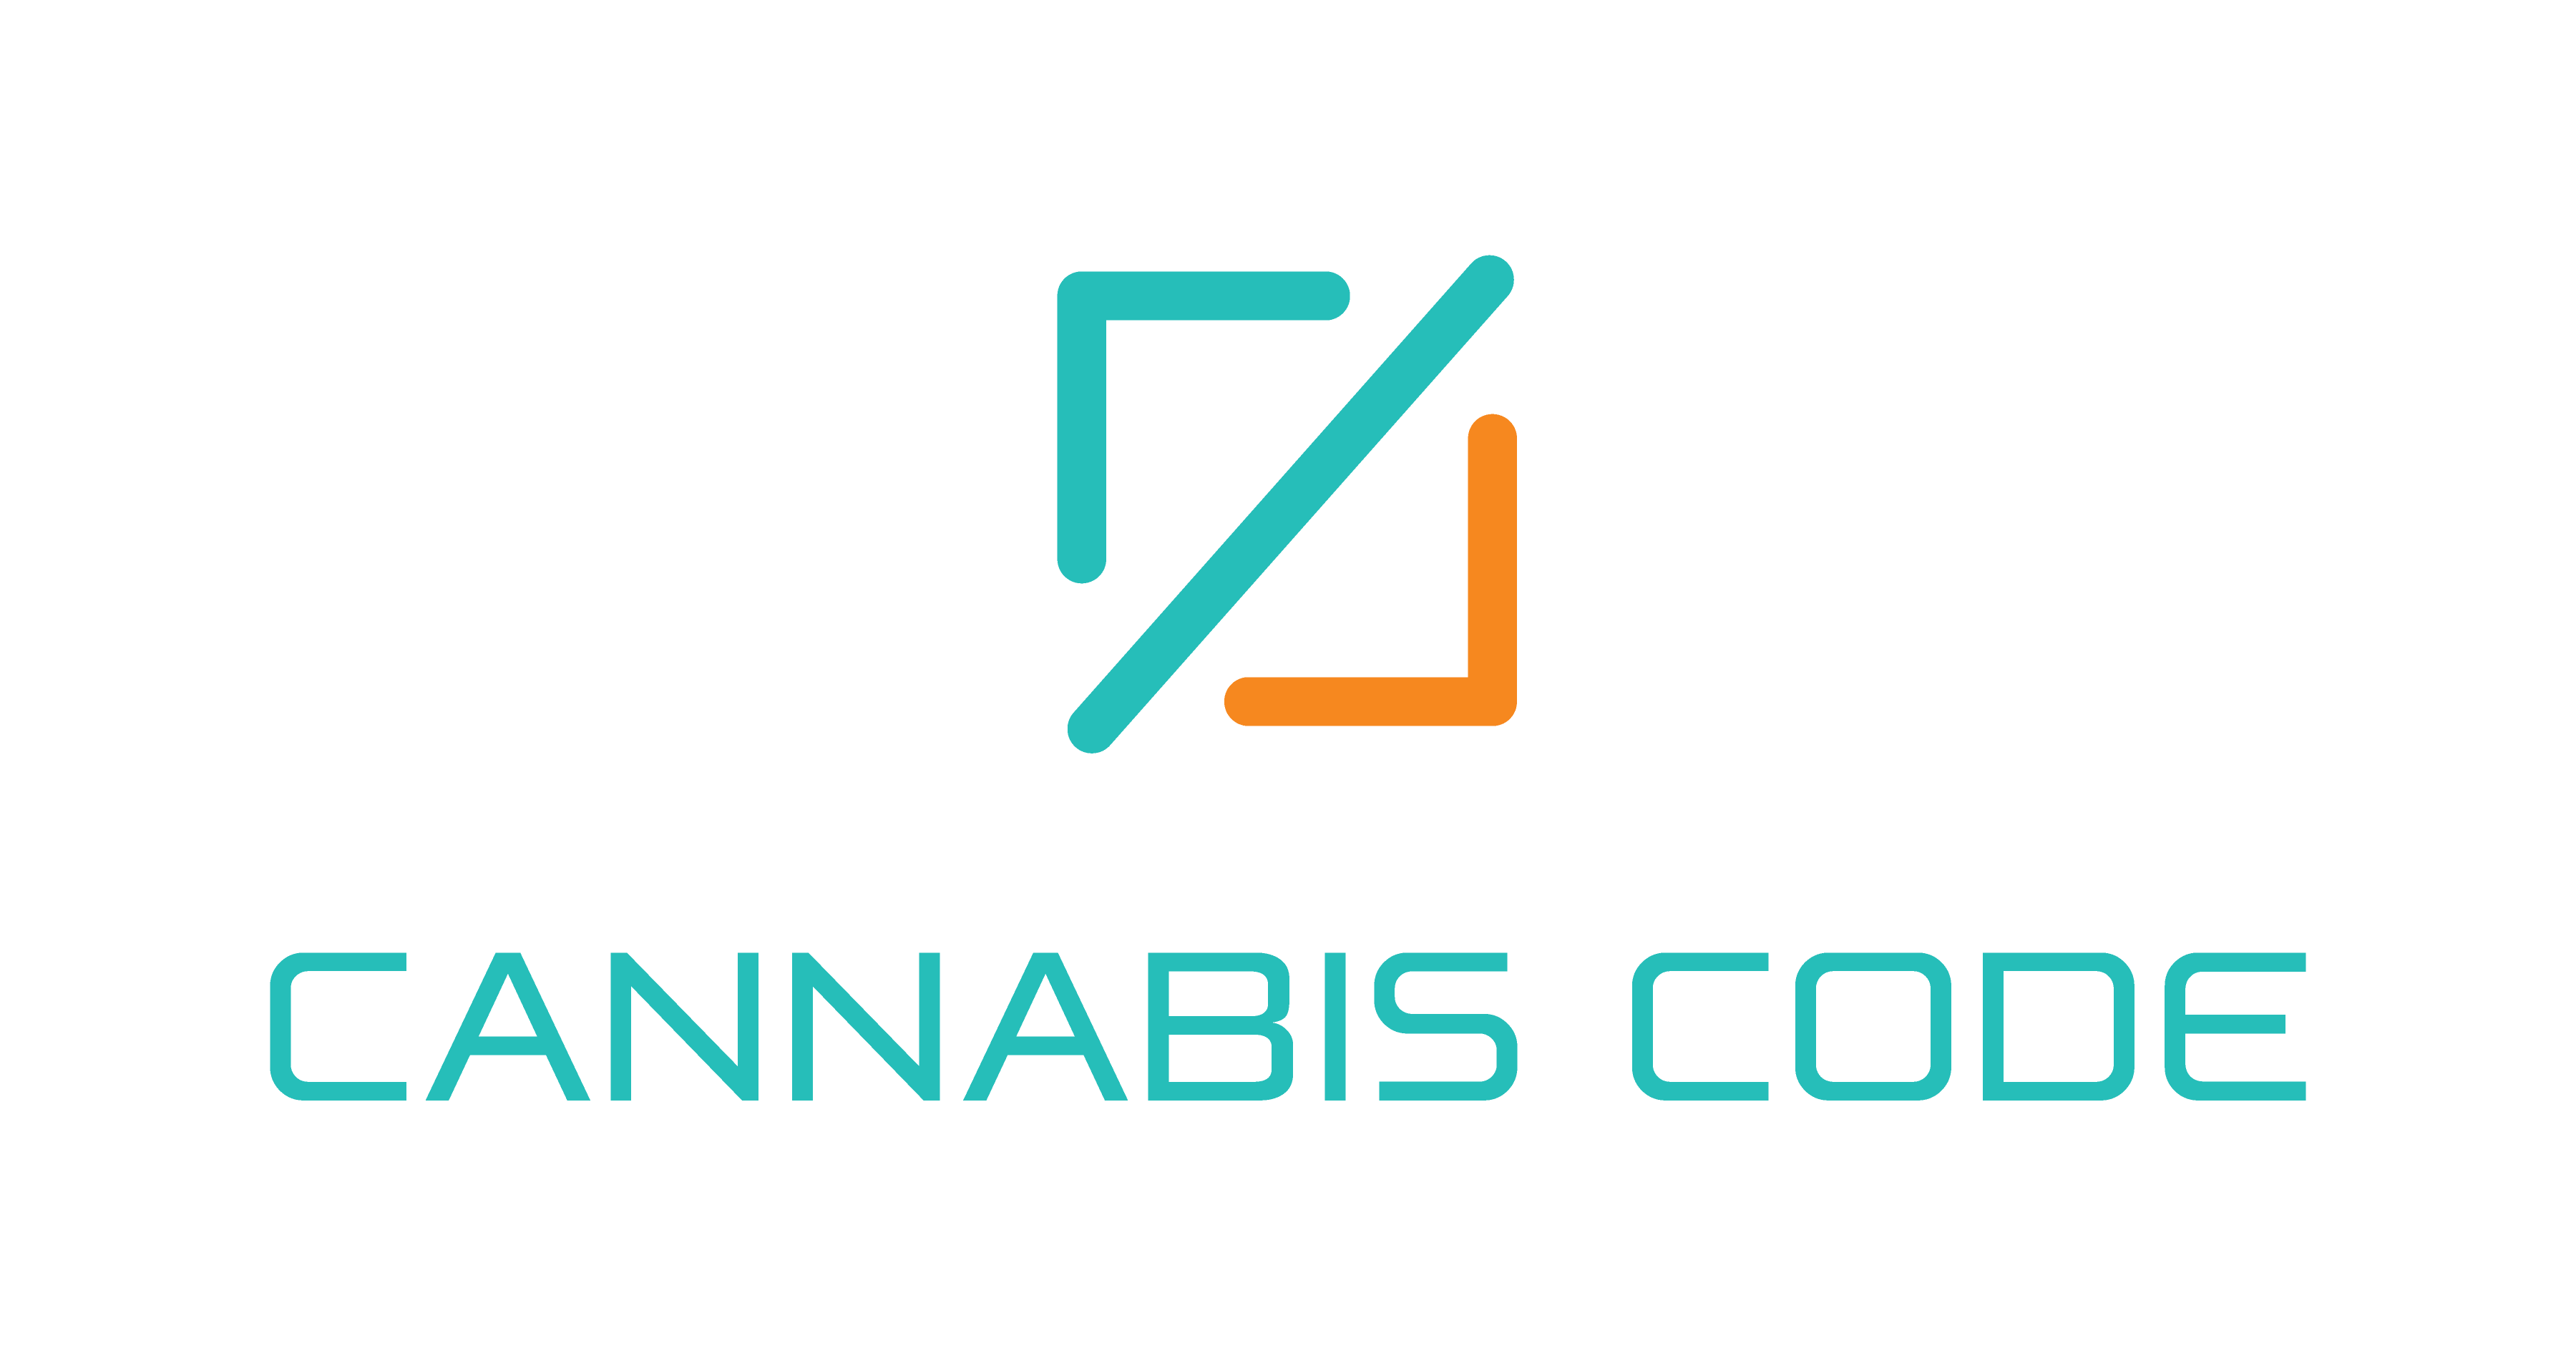 //cannabiscode.b-cdn.net/wp-content/uploads/2018/09/Cannabis-Code_Final.png